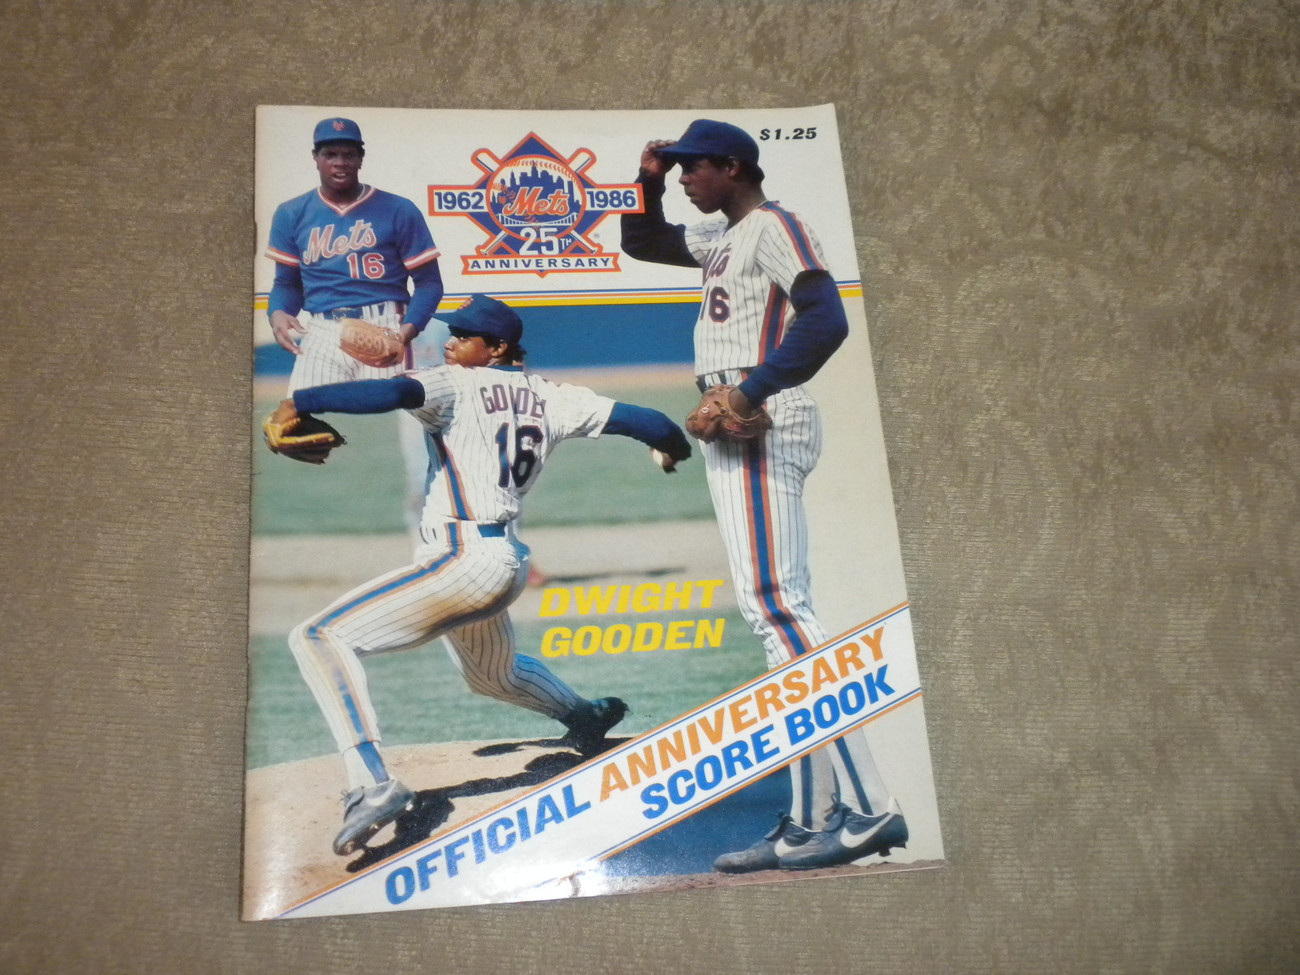 Primary image for 1986 New York Mets 25th Anniversary Scorebook w tkt stub; unscored w team photo